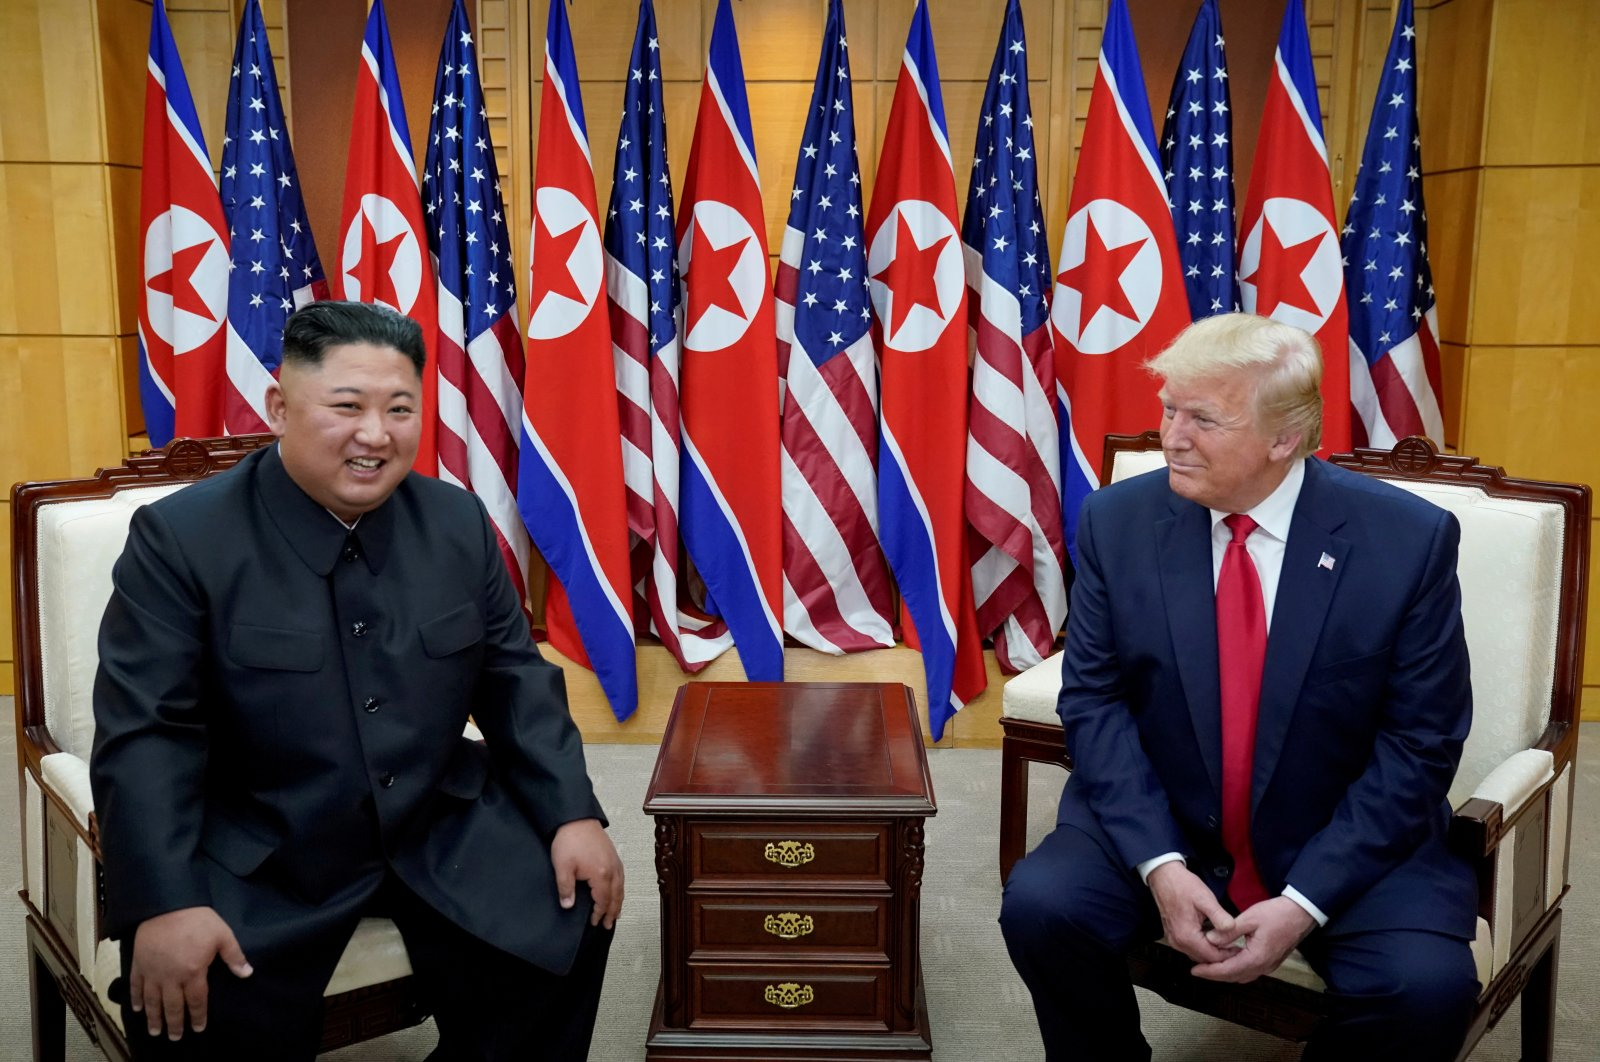 U.S. President Donald Trump meets with North Korean leader Kim Jong Un at the demilitarized zone separating the two Koreas, Panmunjom, June 30, 2019. (REUTERS Photo)